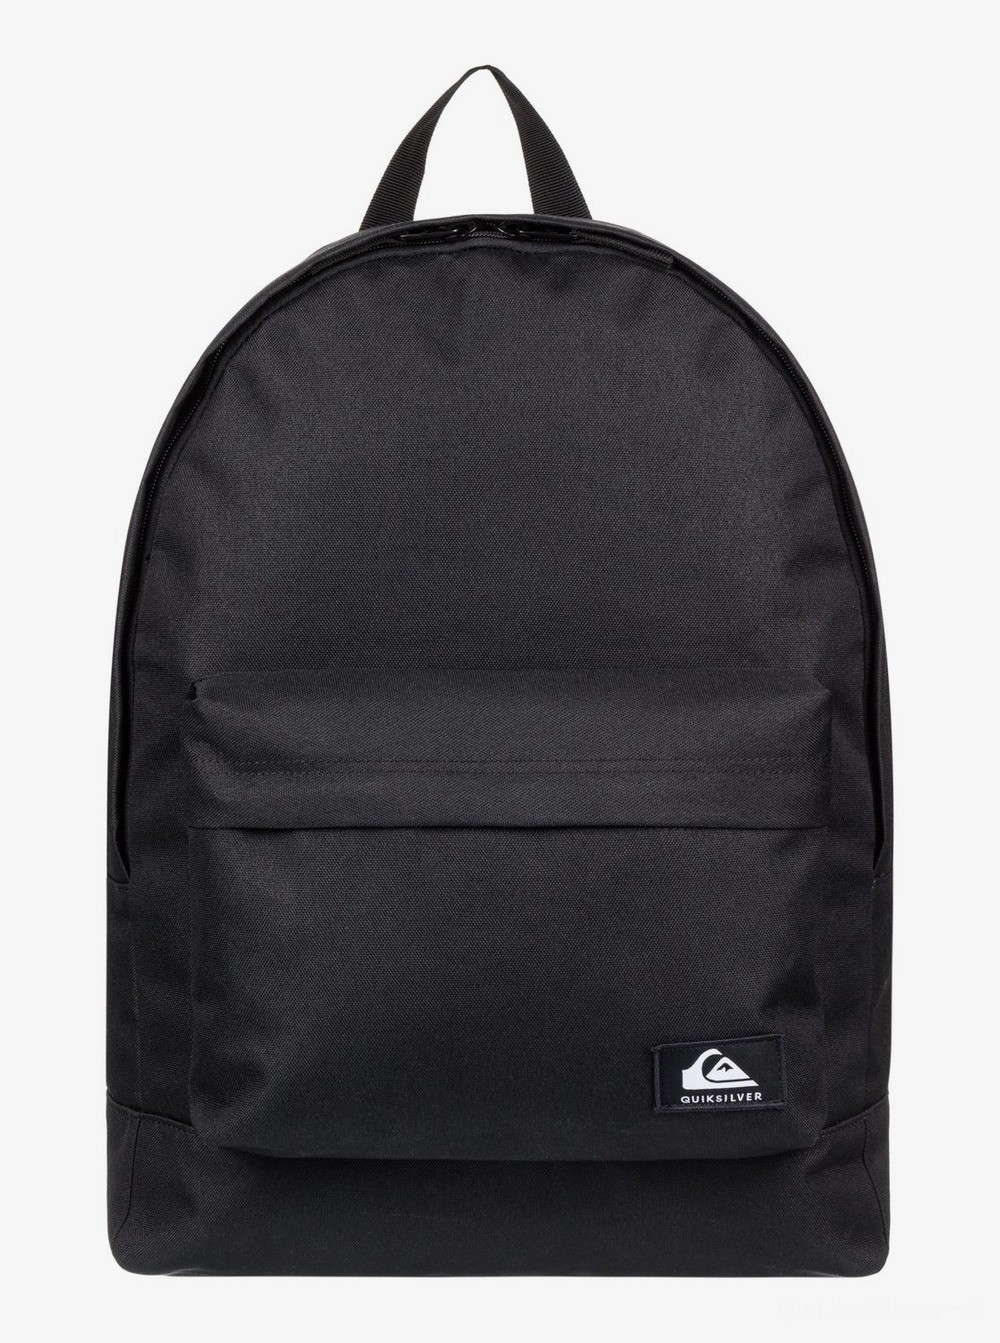 limited sale everyday poster 25l medium backpack - black last chance best price